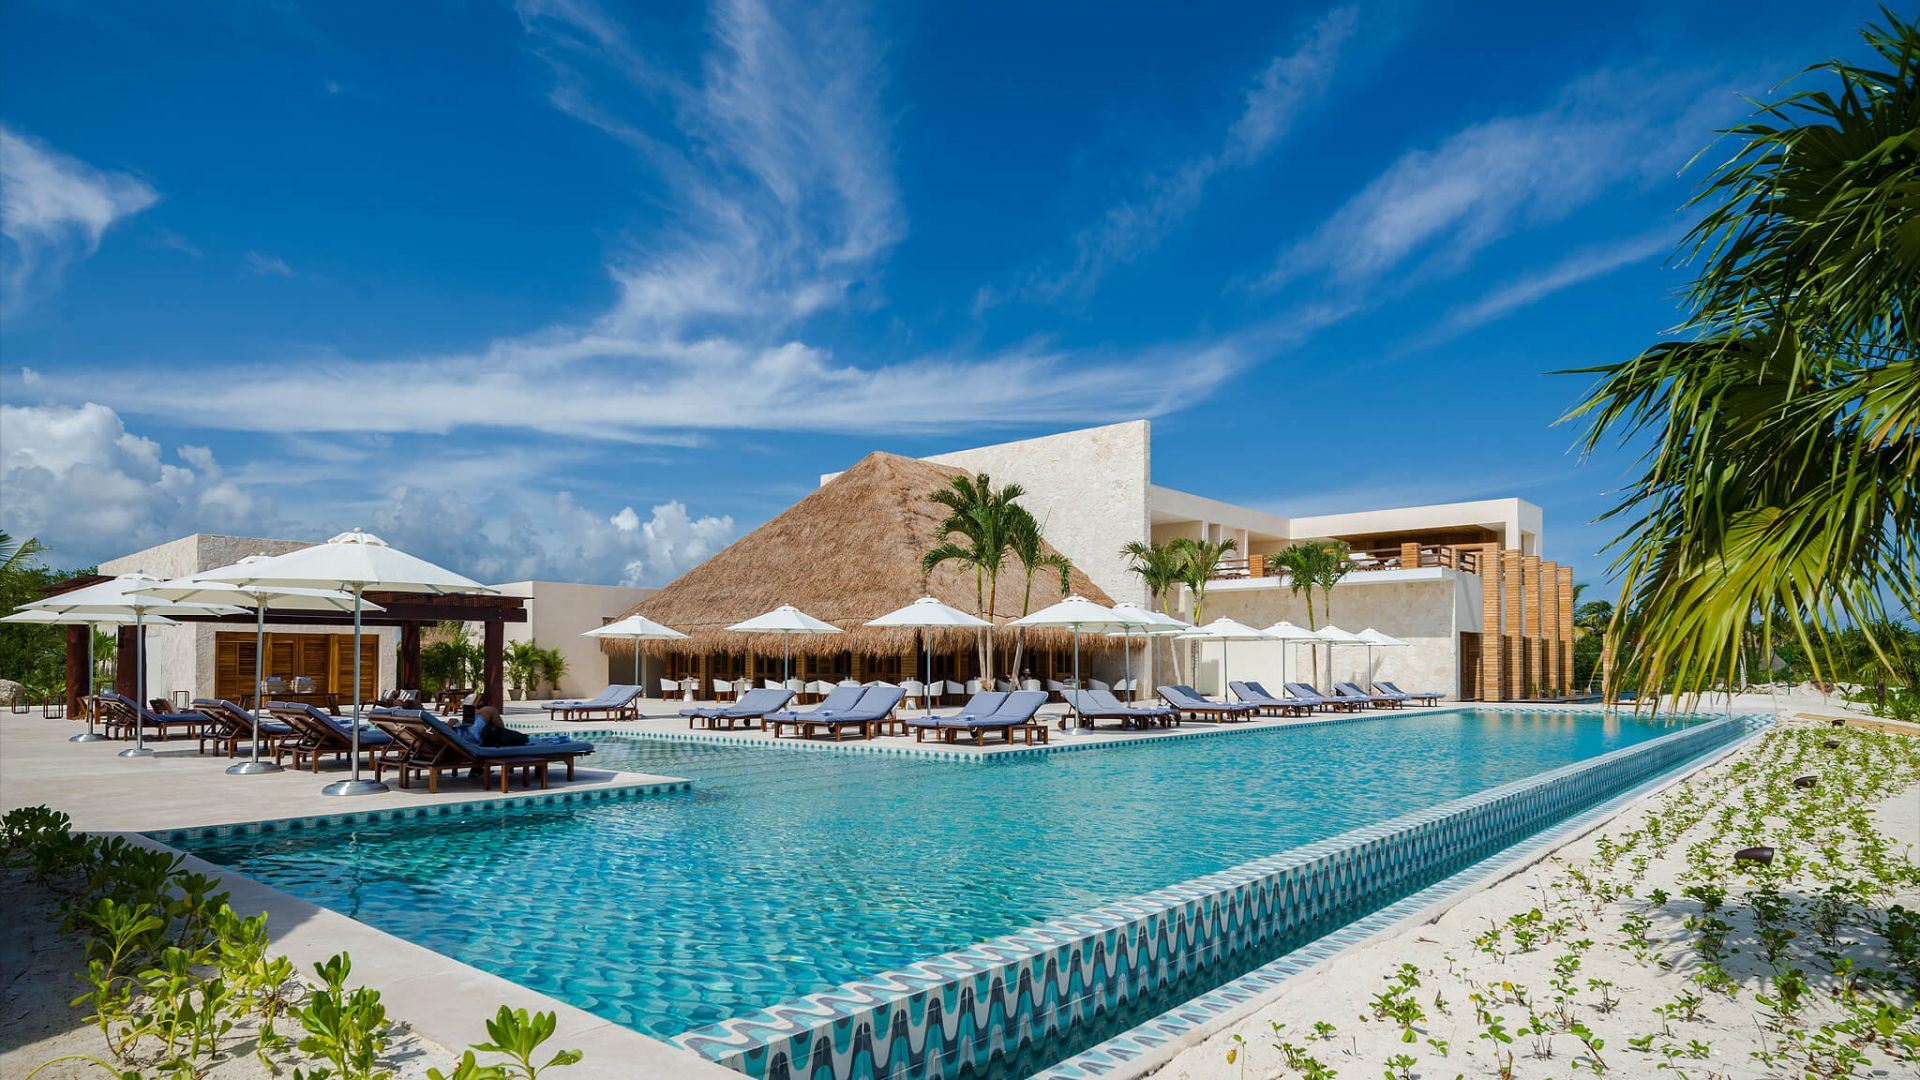 See More Information About Chable Maroma Pool And Spa